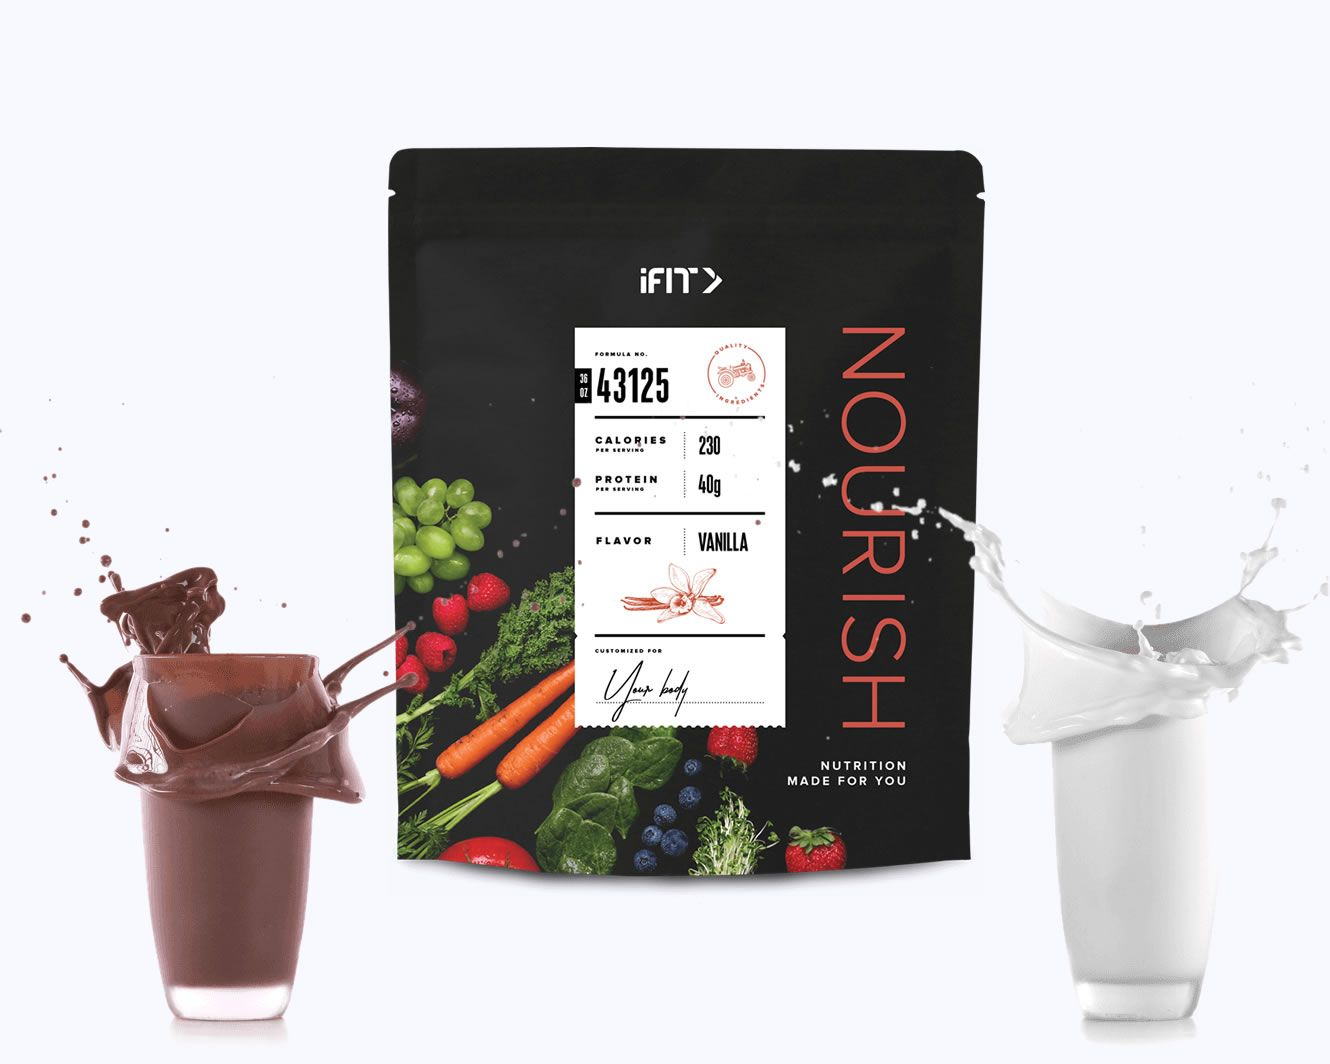 TRY YOUR PERSONALIZED PROTEIN FITNESS SHAKE. FLAVORS - CHOCOLATE & VANILLA